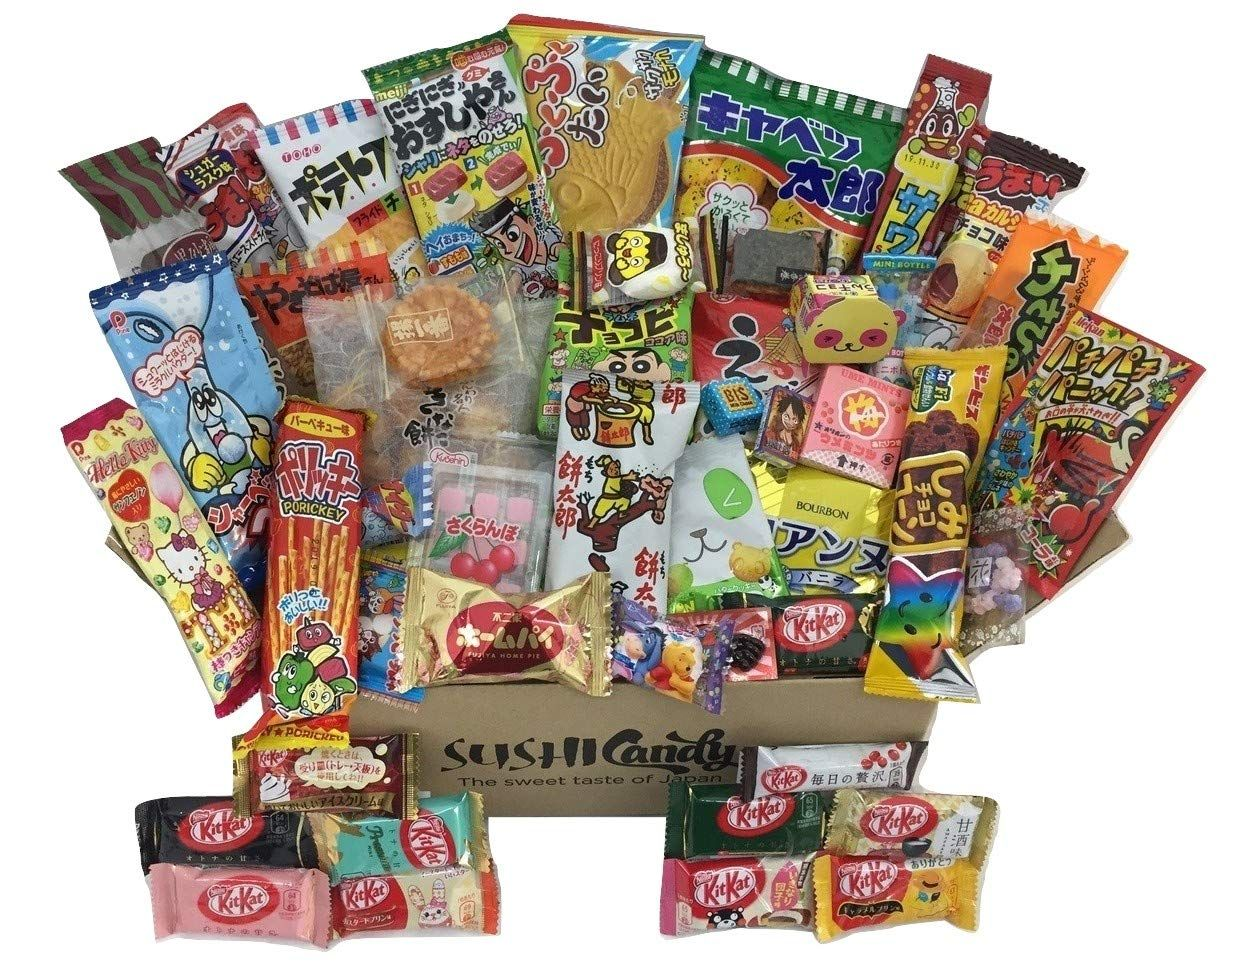 Japanese Candy And Snack Box Japanese Candy Box Japanese Candy Japanese Kit Kat Flavors